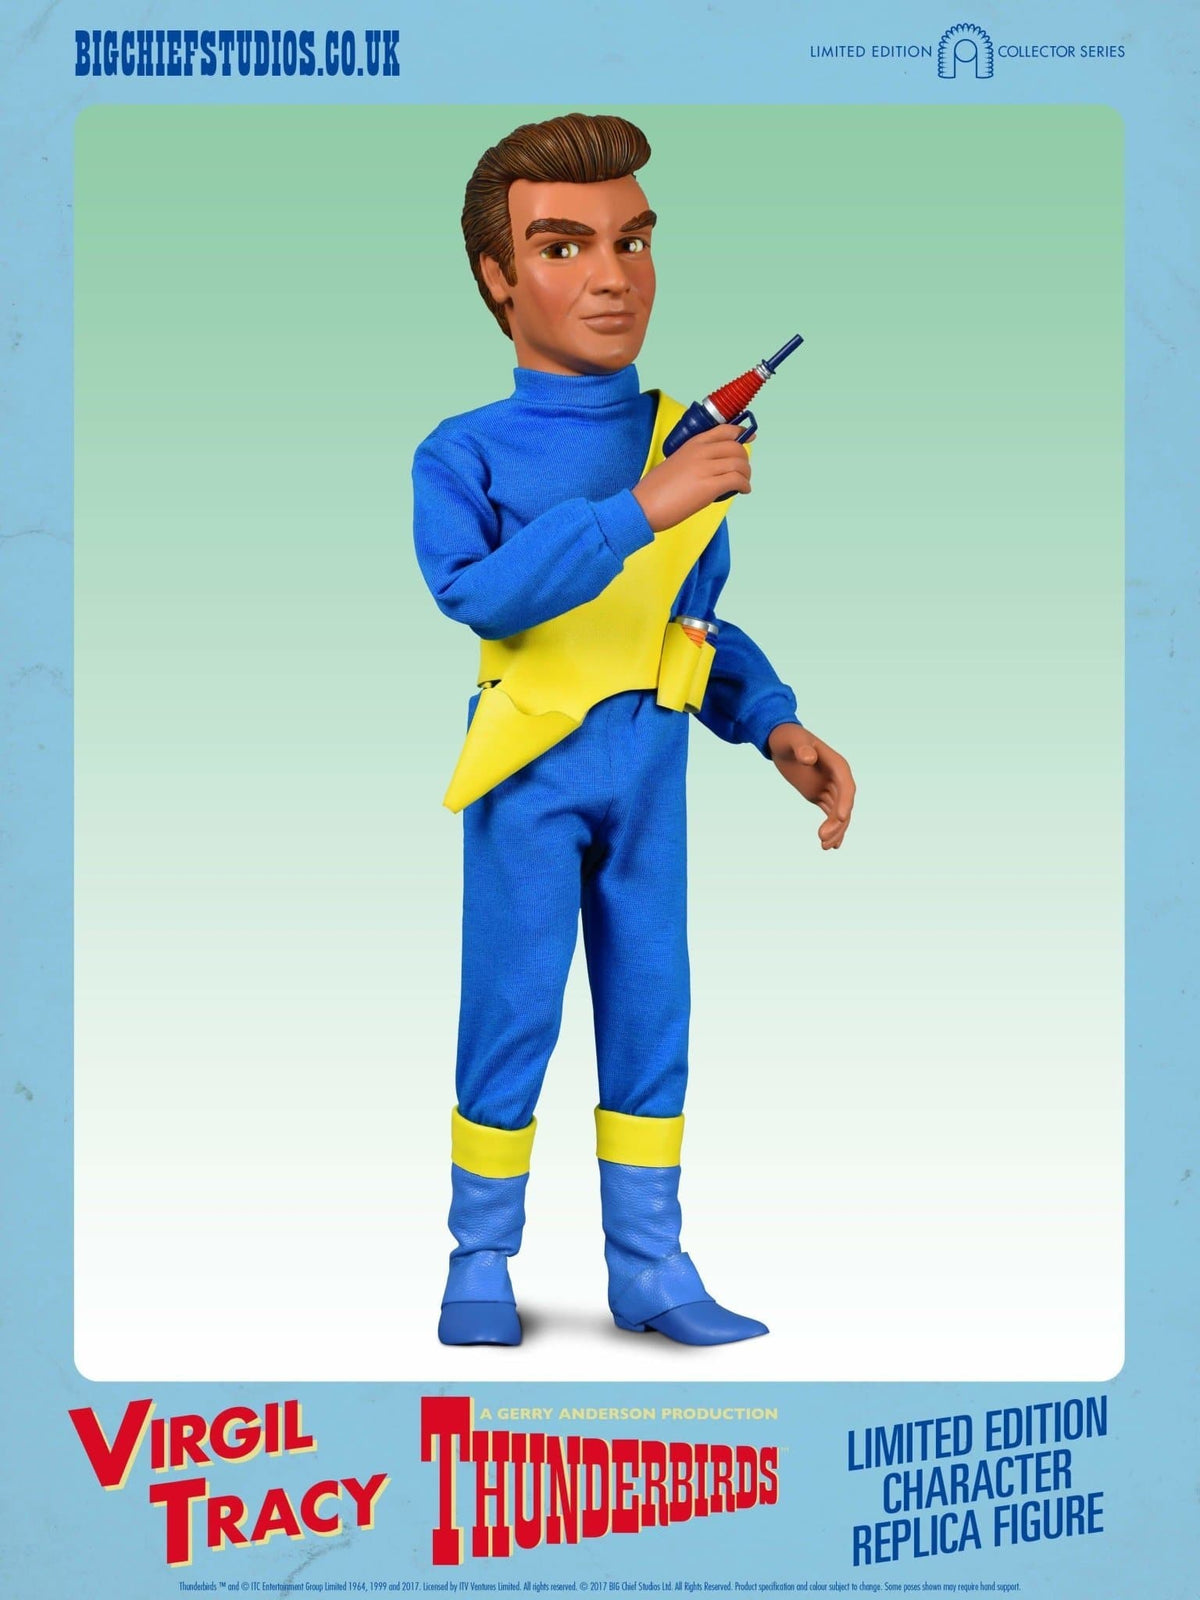 1/6 Scale Virgil Tracy Character Replica Thunderbirds Figure from Big Chief Studios - The Gerry Anderson Store